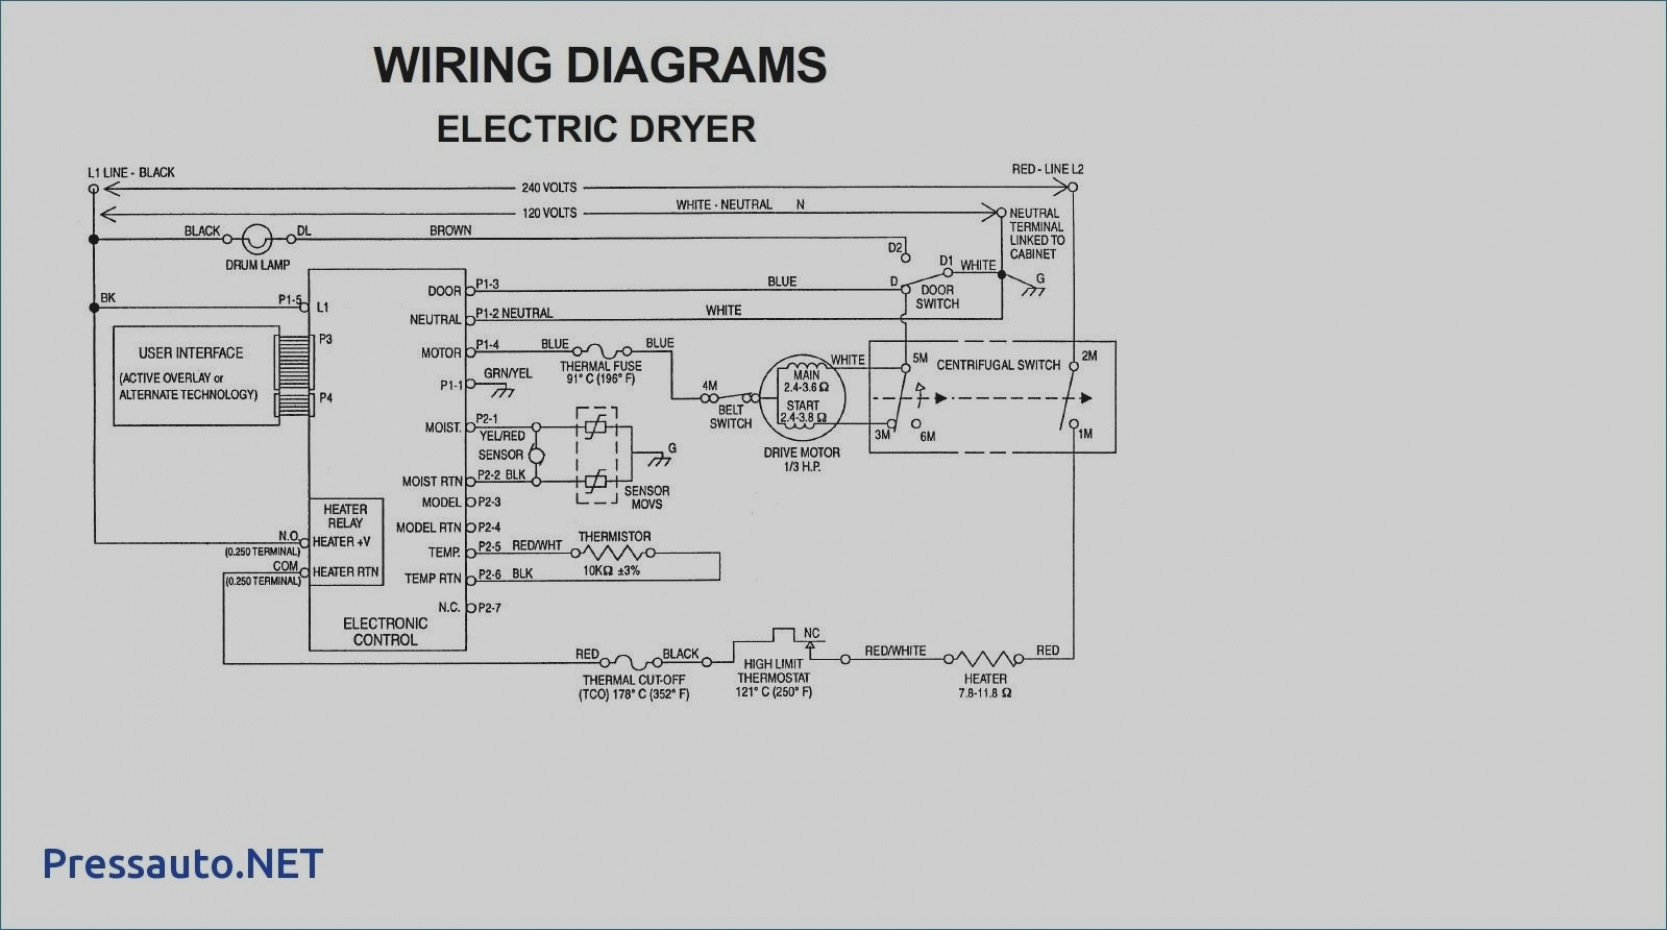 hight resolution of whirlpool dryer electrical schematic wiring diagram centre wiring diagram whirlpool gas dryer whirlpool dryer wiring diagram